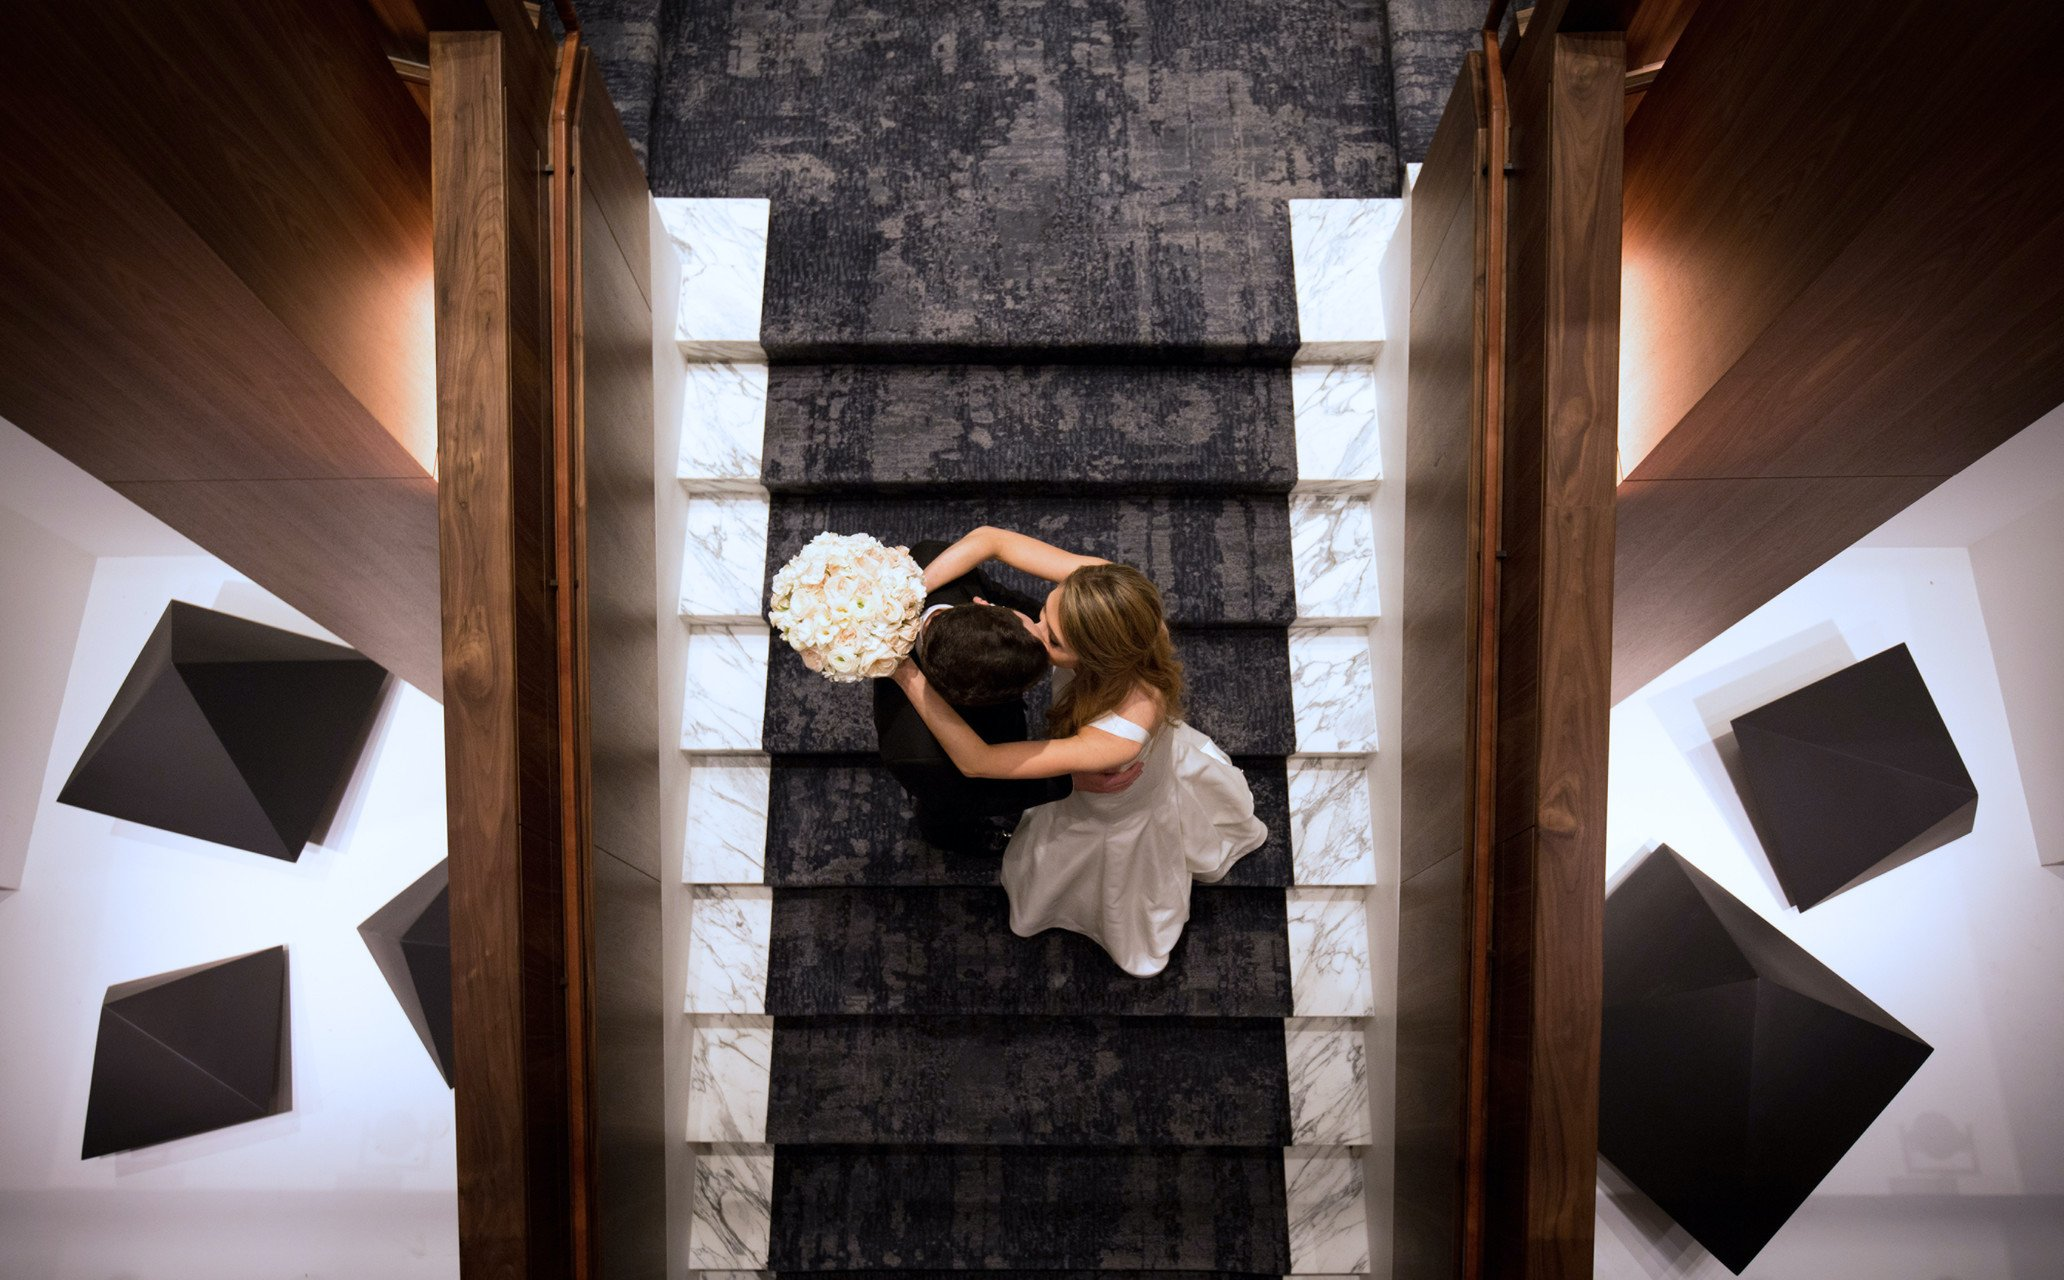 The bouquet holding bride and suited groom kiss each other on the Four Seasons Hotel Houston stairs.